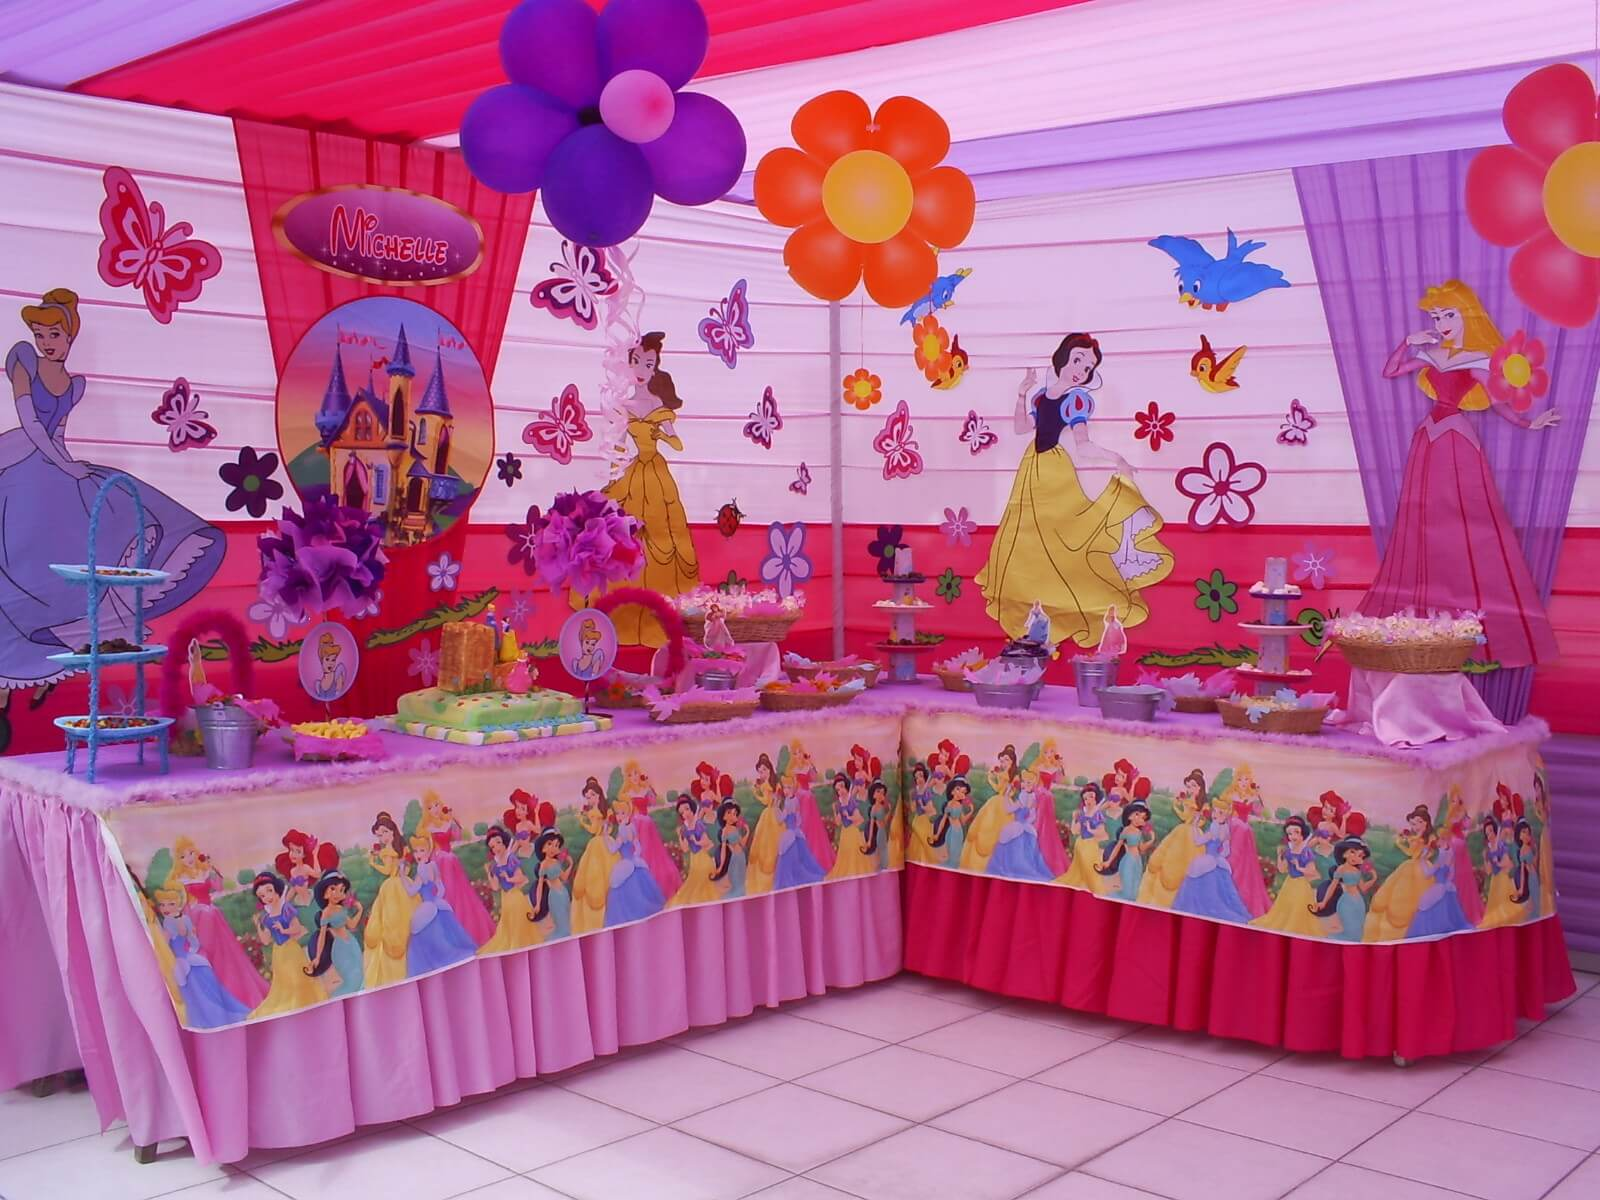 5 pasos para decorar una fiesta infantil for Decoracion de fiestas